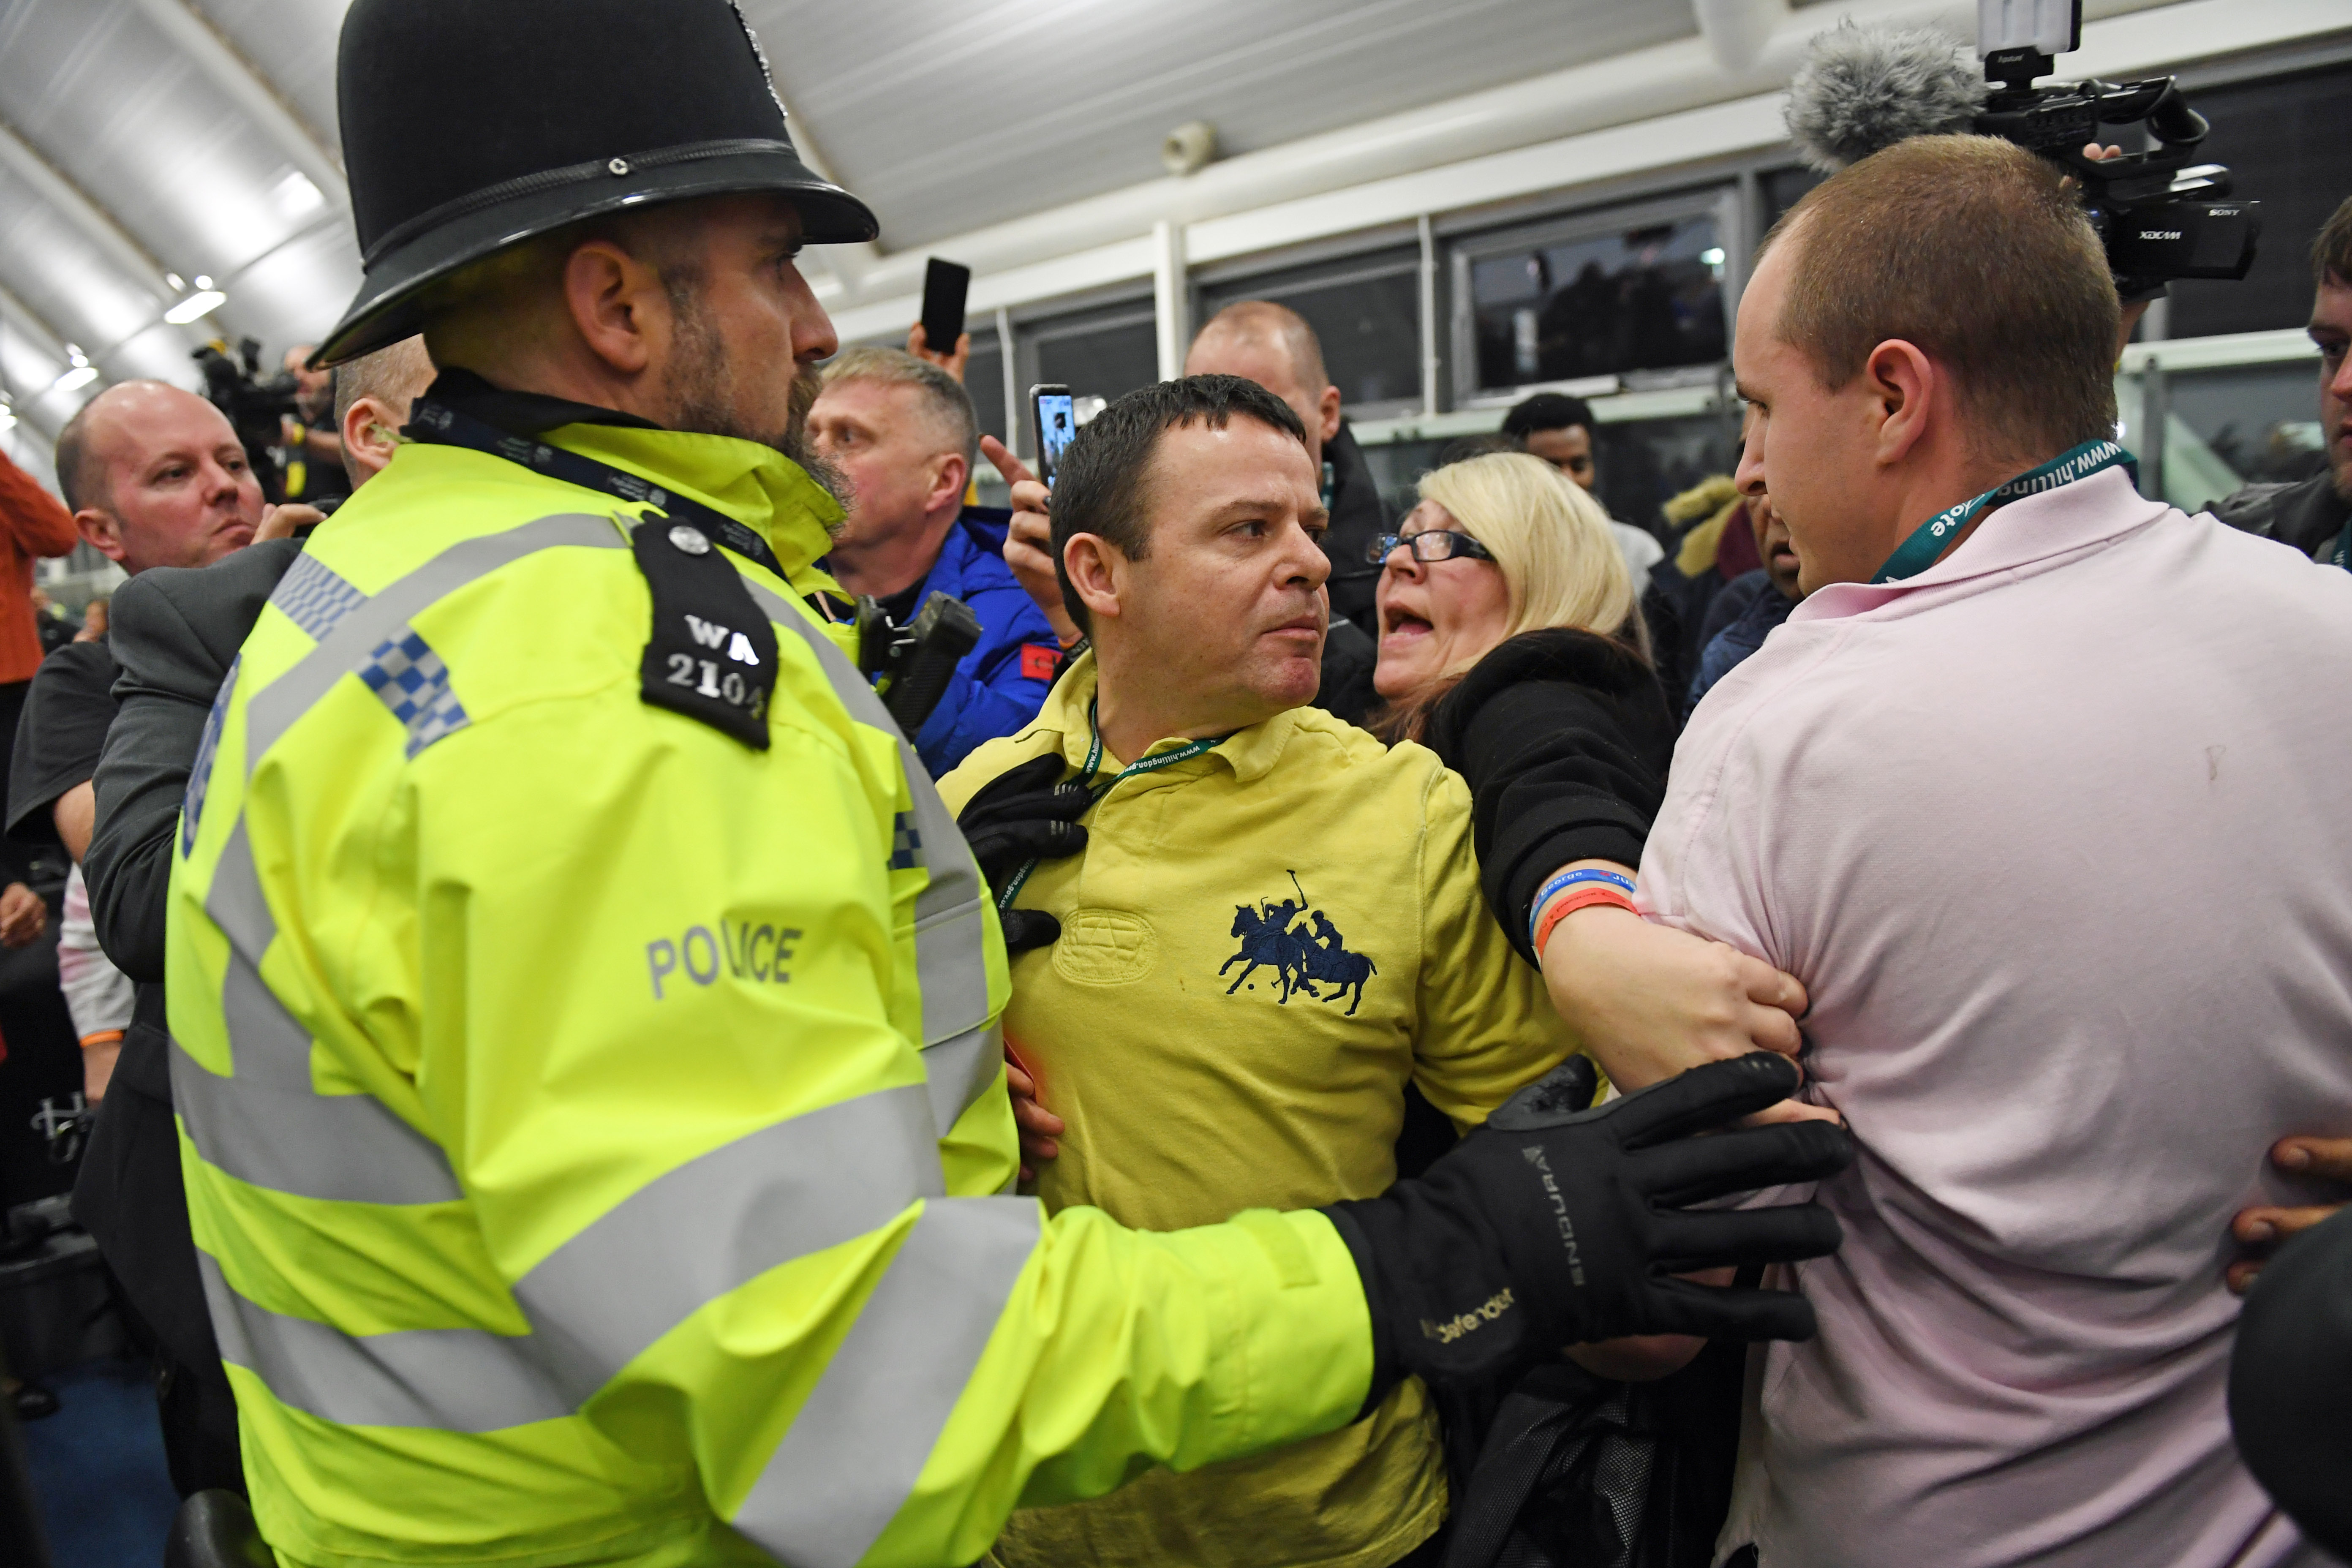 Police with party supporters at the Uxbridge count where Hayes and Harlington MP John McDonnell retained his parliamentary seat after the 2019 General Election, and the result for the Prime Minister's constituency is expected shortly. (Photo by Stefan Rousseau/PA Images via Getty Images)